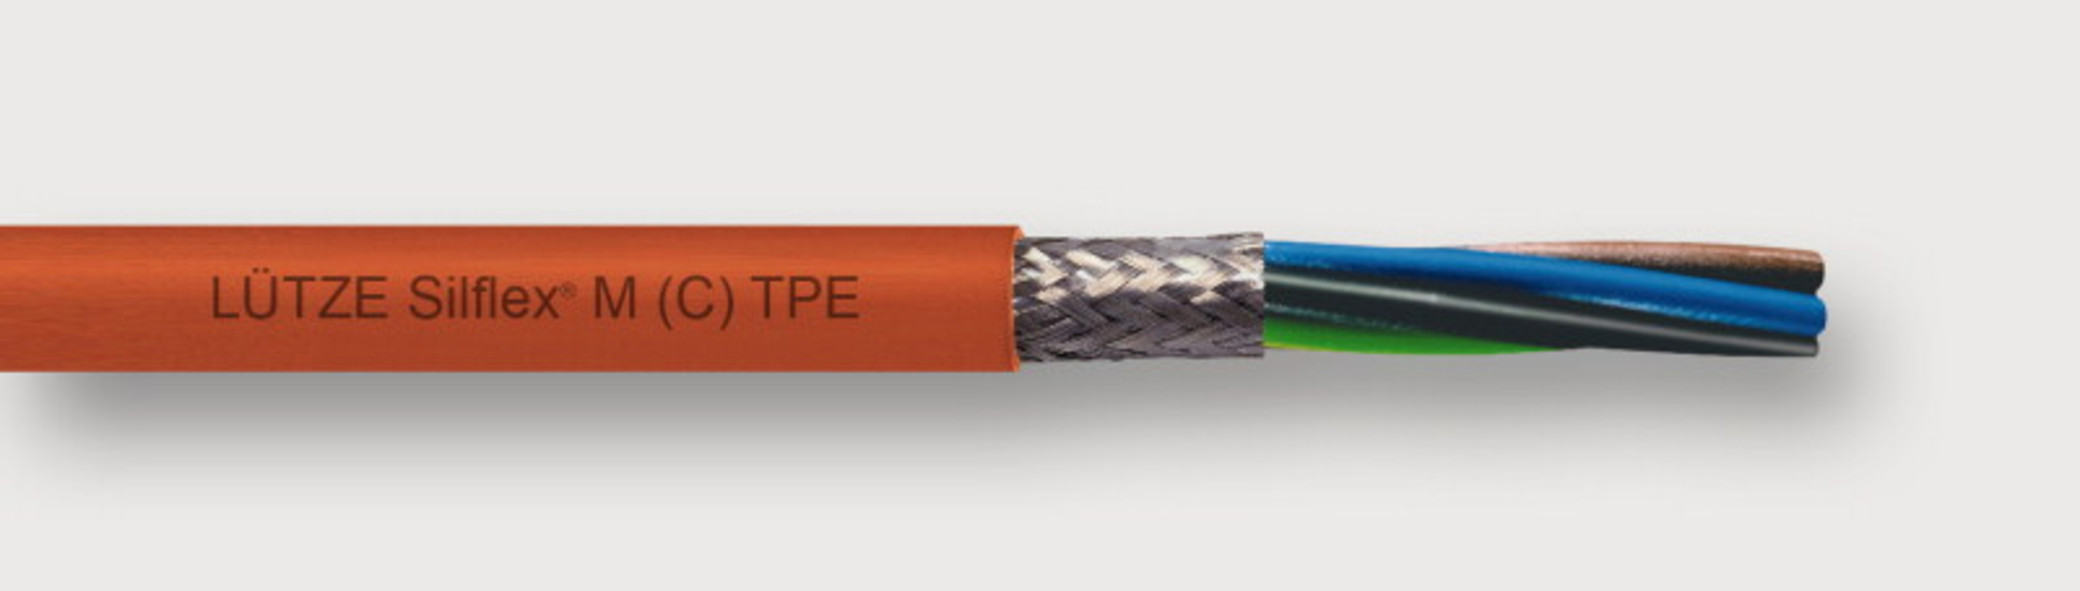 A3170404 - LÜTZE SILFLEX® M (C) TPE POWER TRAY CABLE Flexible Motor Cable for Allen-Bradley and other systems